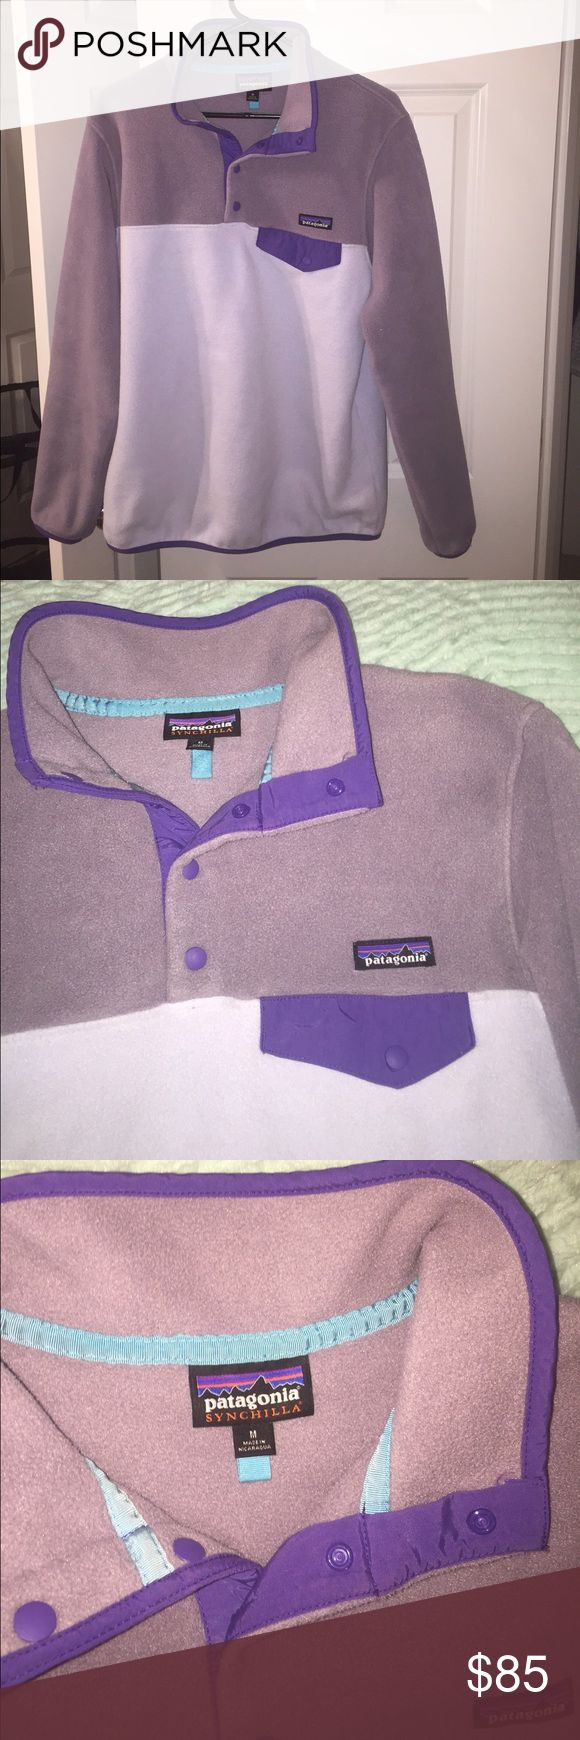 Patagonia pullover Purple Patagonia pullover. Last sale fell through so relisting. In excellent condition! Patagonia Tops Sweatshirts & Hoodies